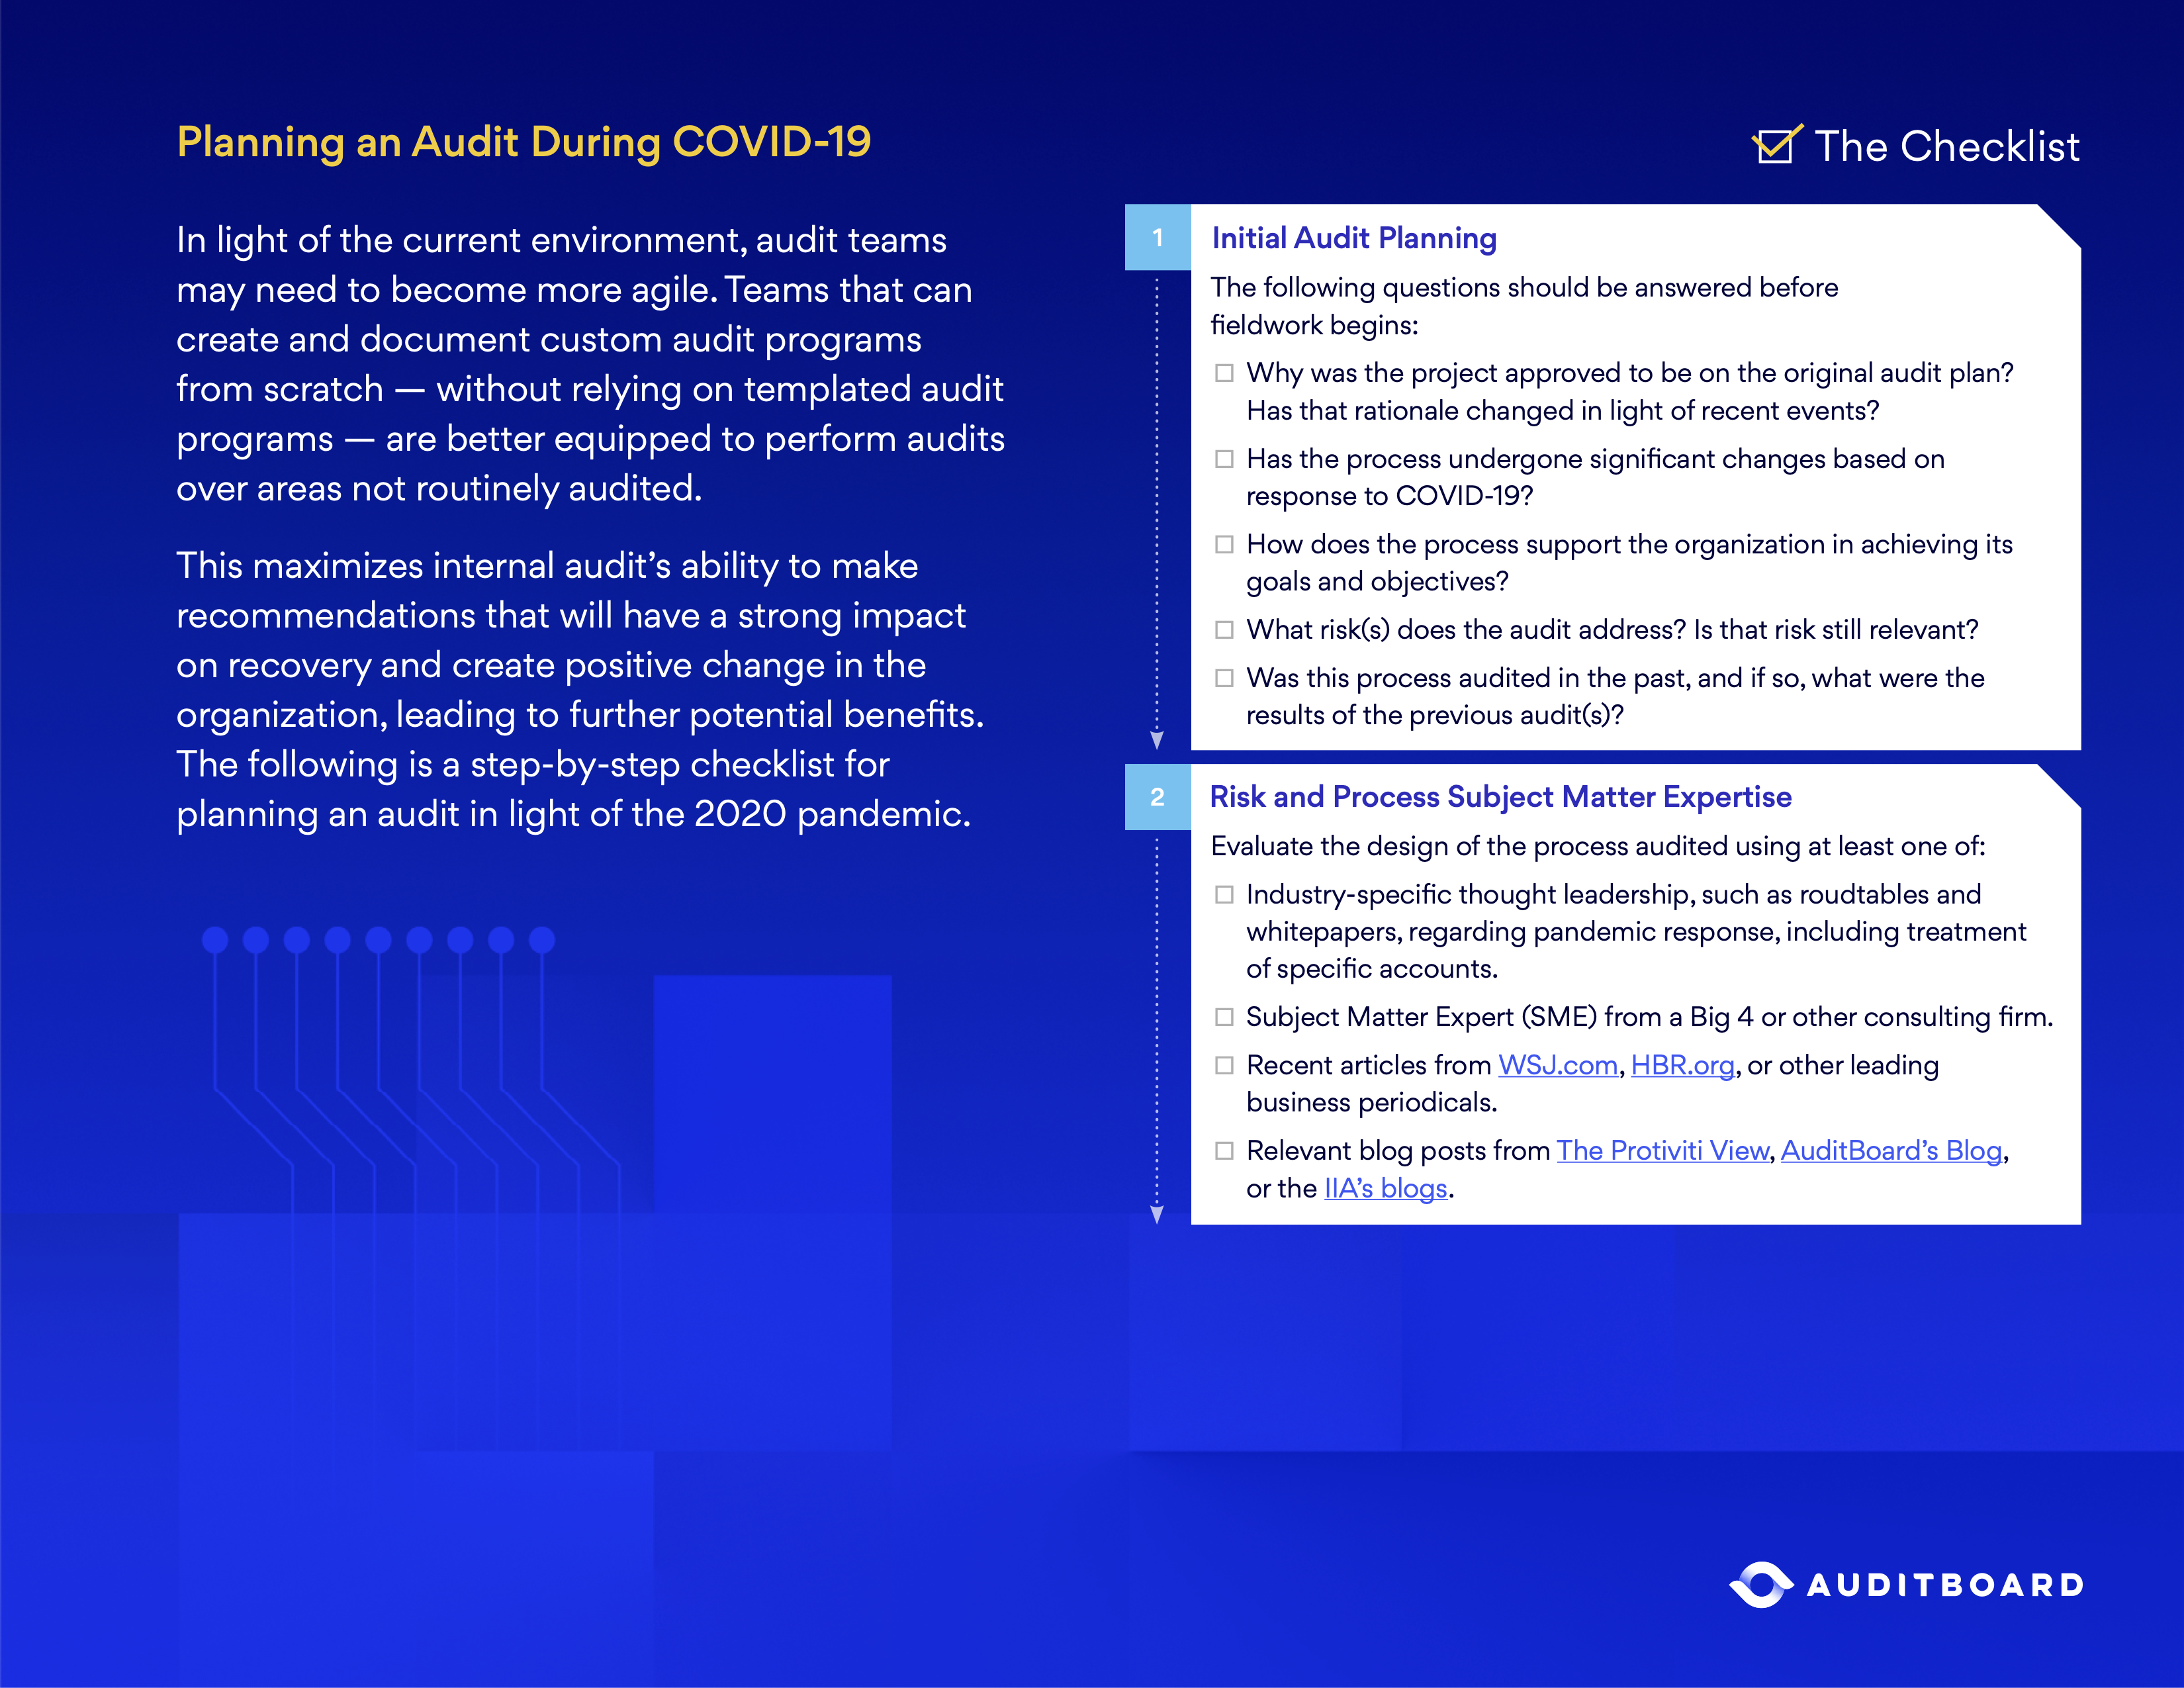 Download Planning an Audit During COVID-19 Checklist